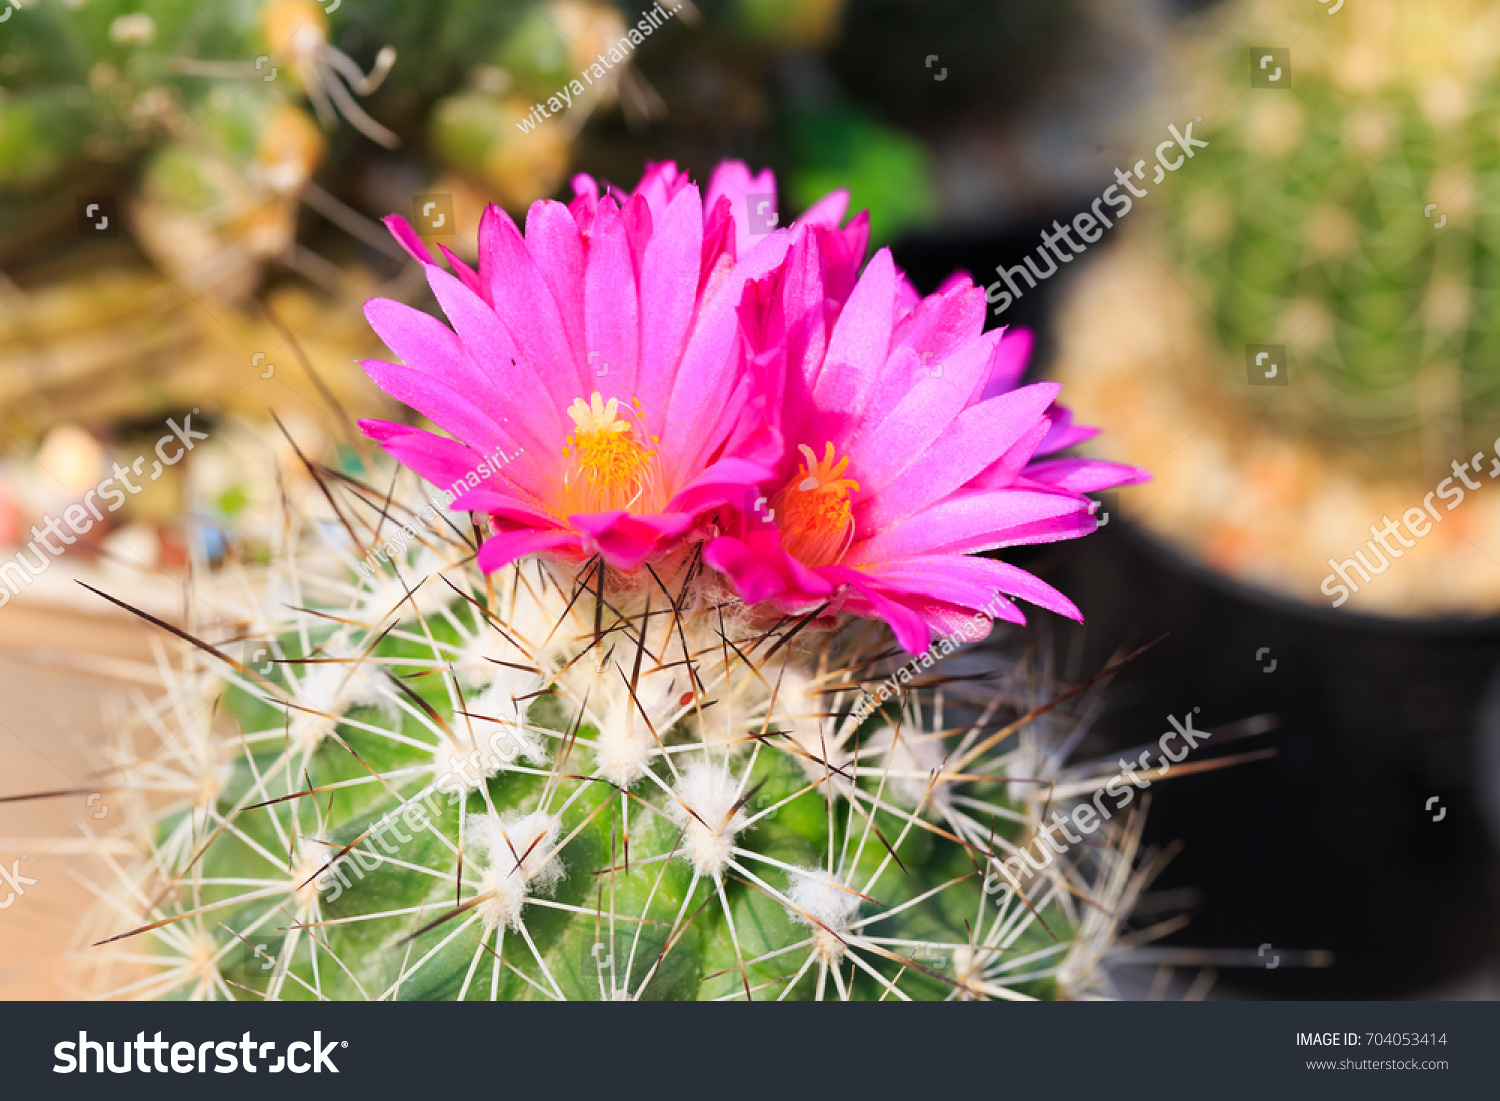 Pink Cactus Flower Selected Focus Stock Photo Edit Now 704053414